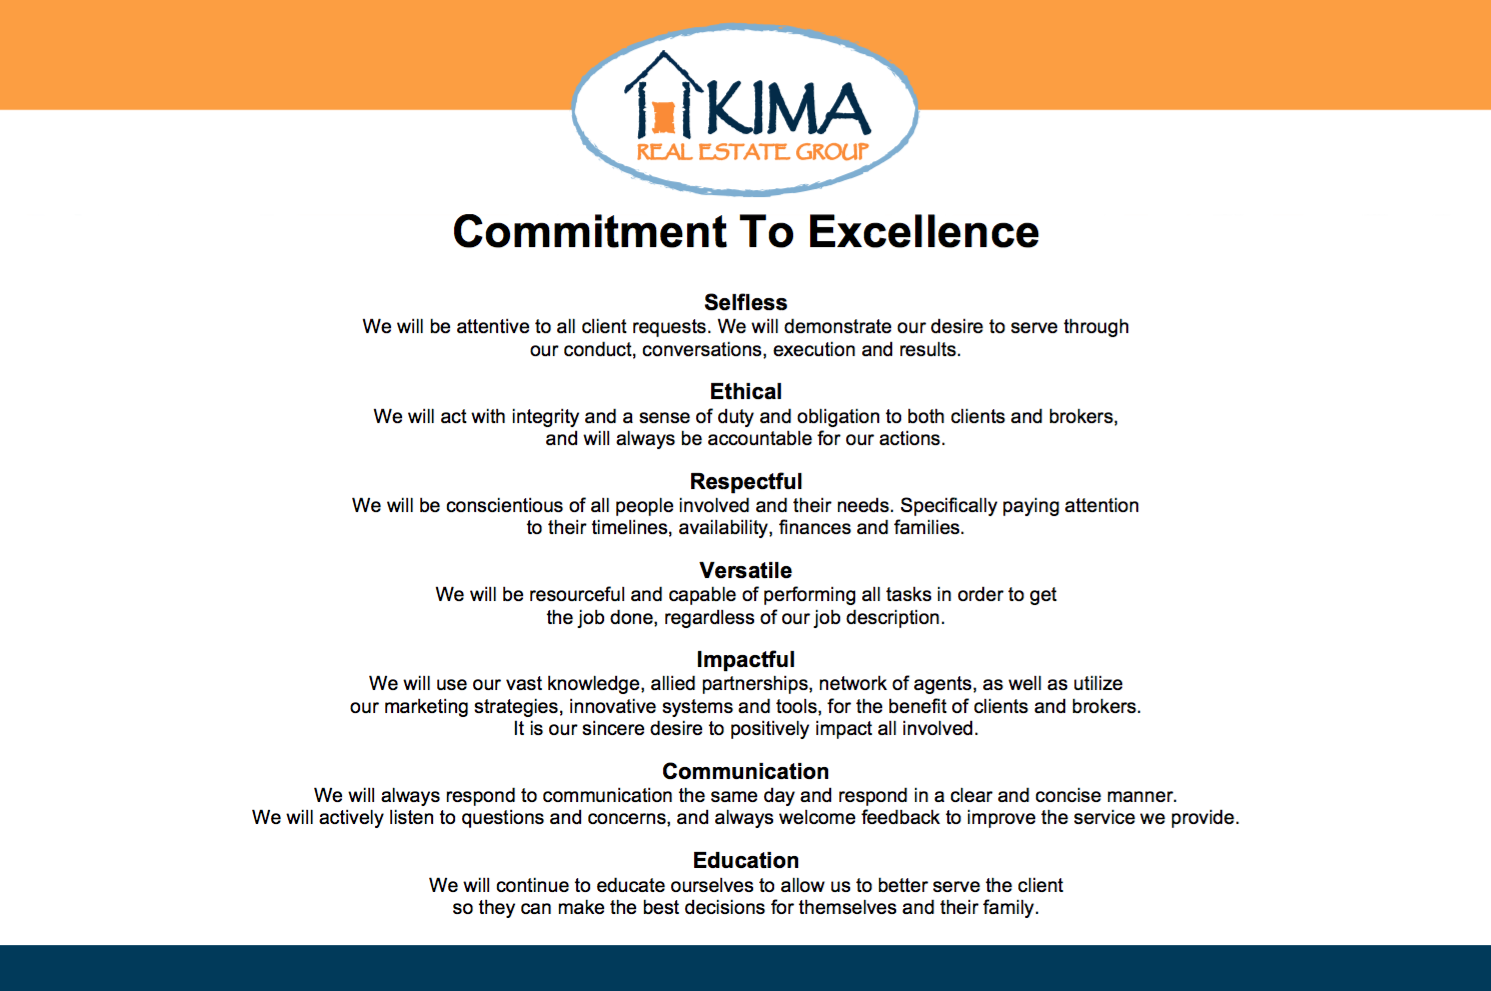 kreg-commitment-to-excellence